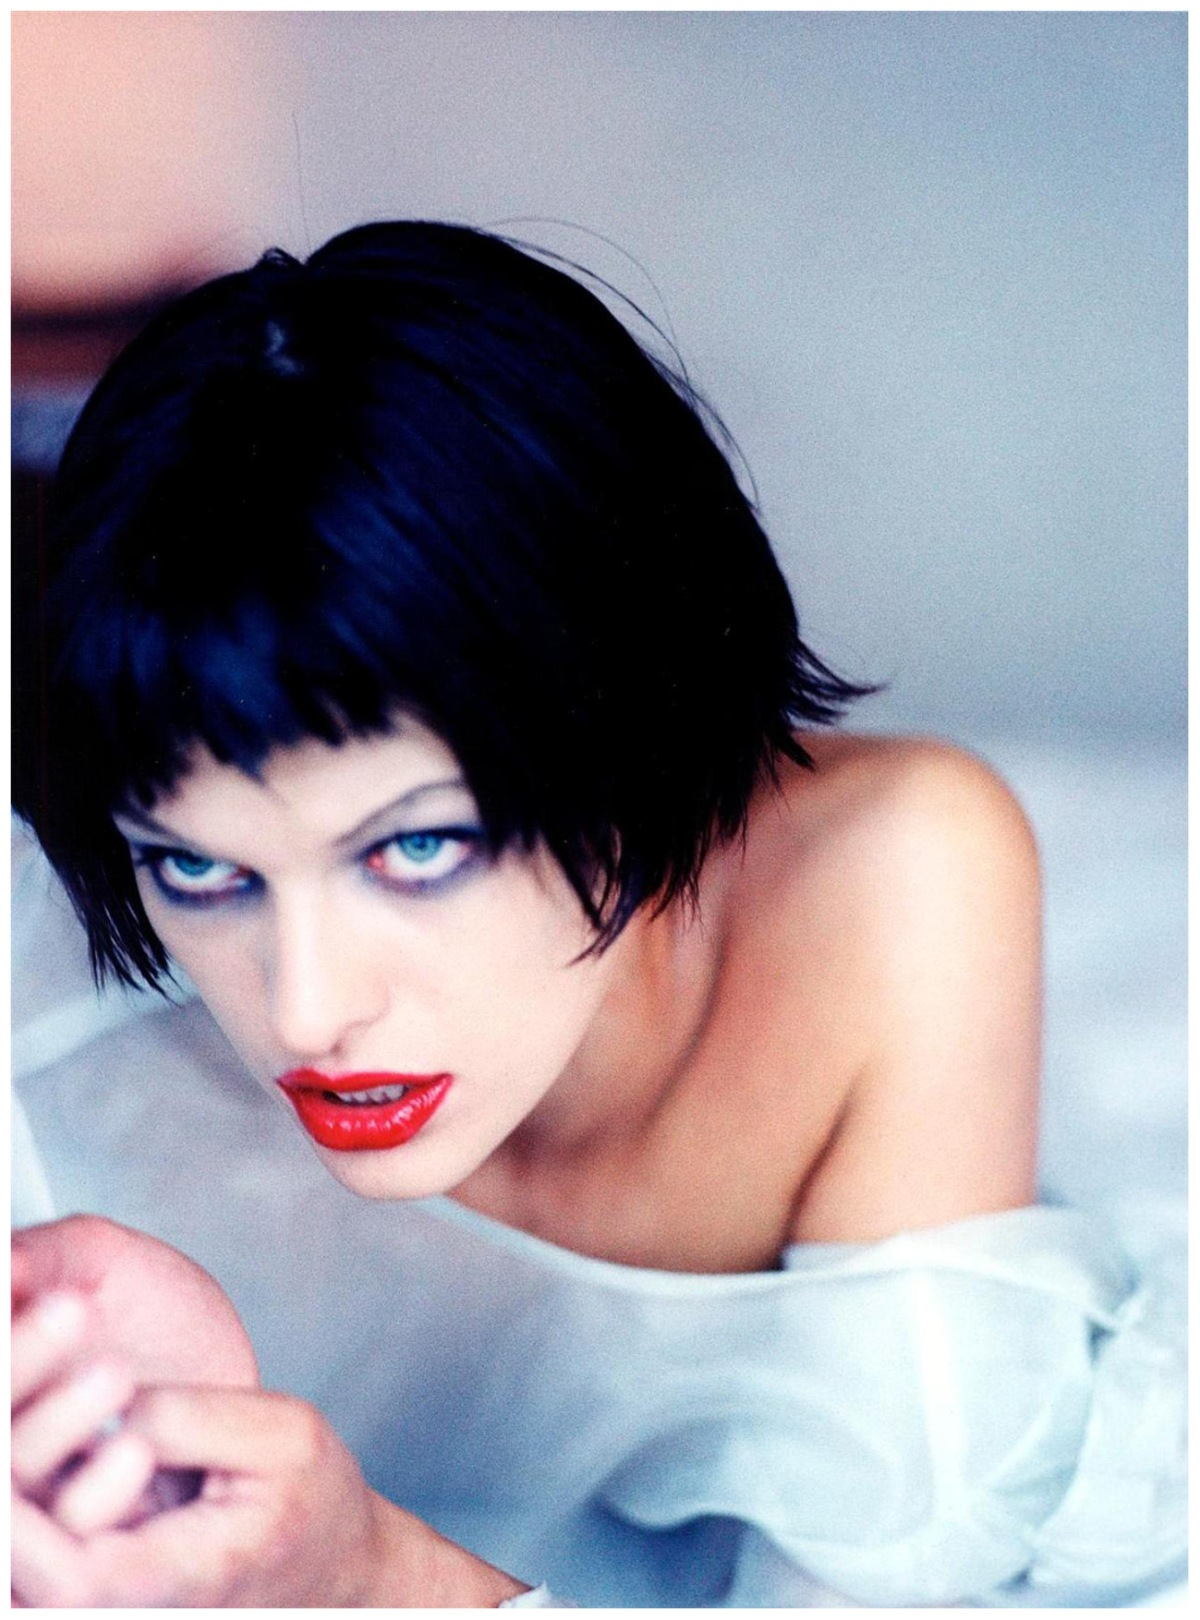 http://pleasurephoto.files.wordpress.com/2012/09/milla-jovovich-ellen-von-unwerth-1997b.jpg?w=1200